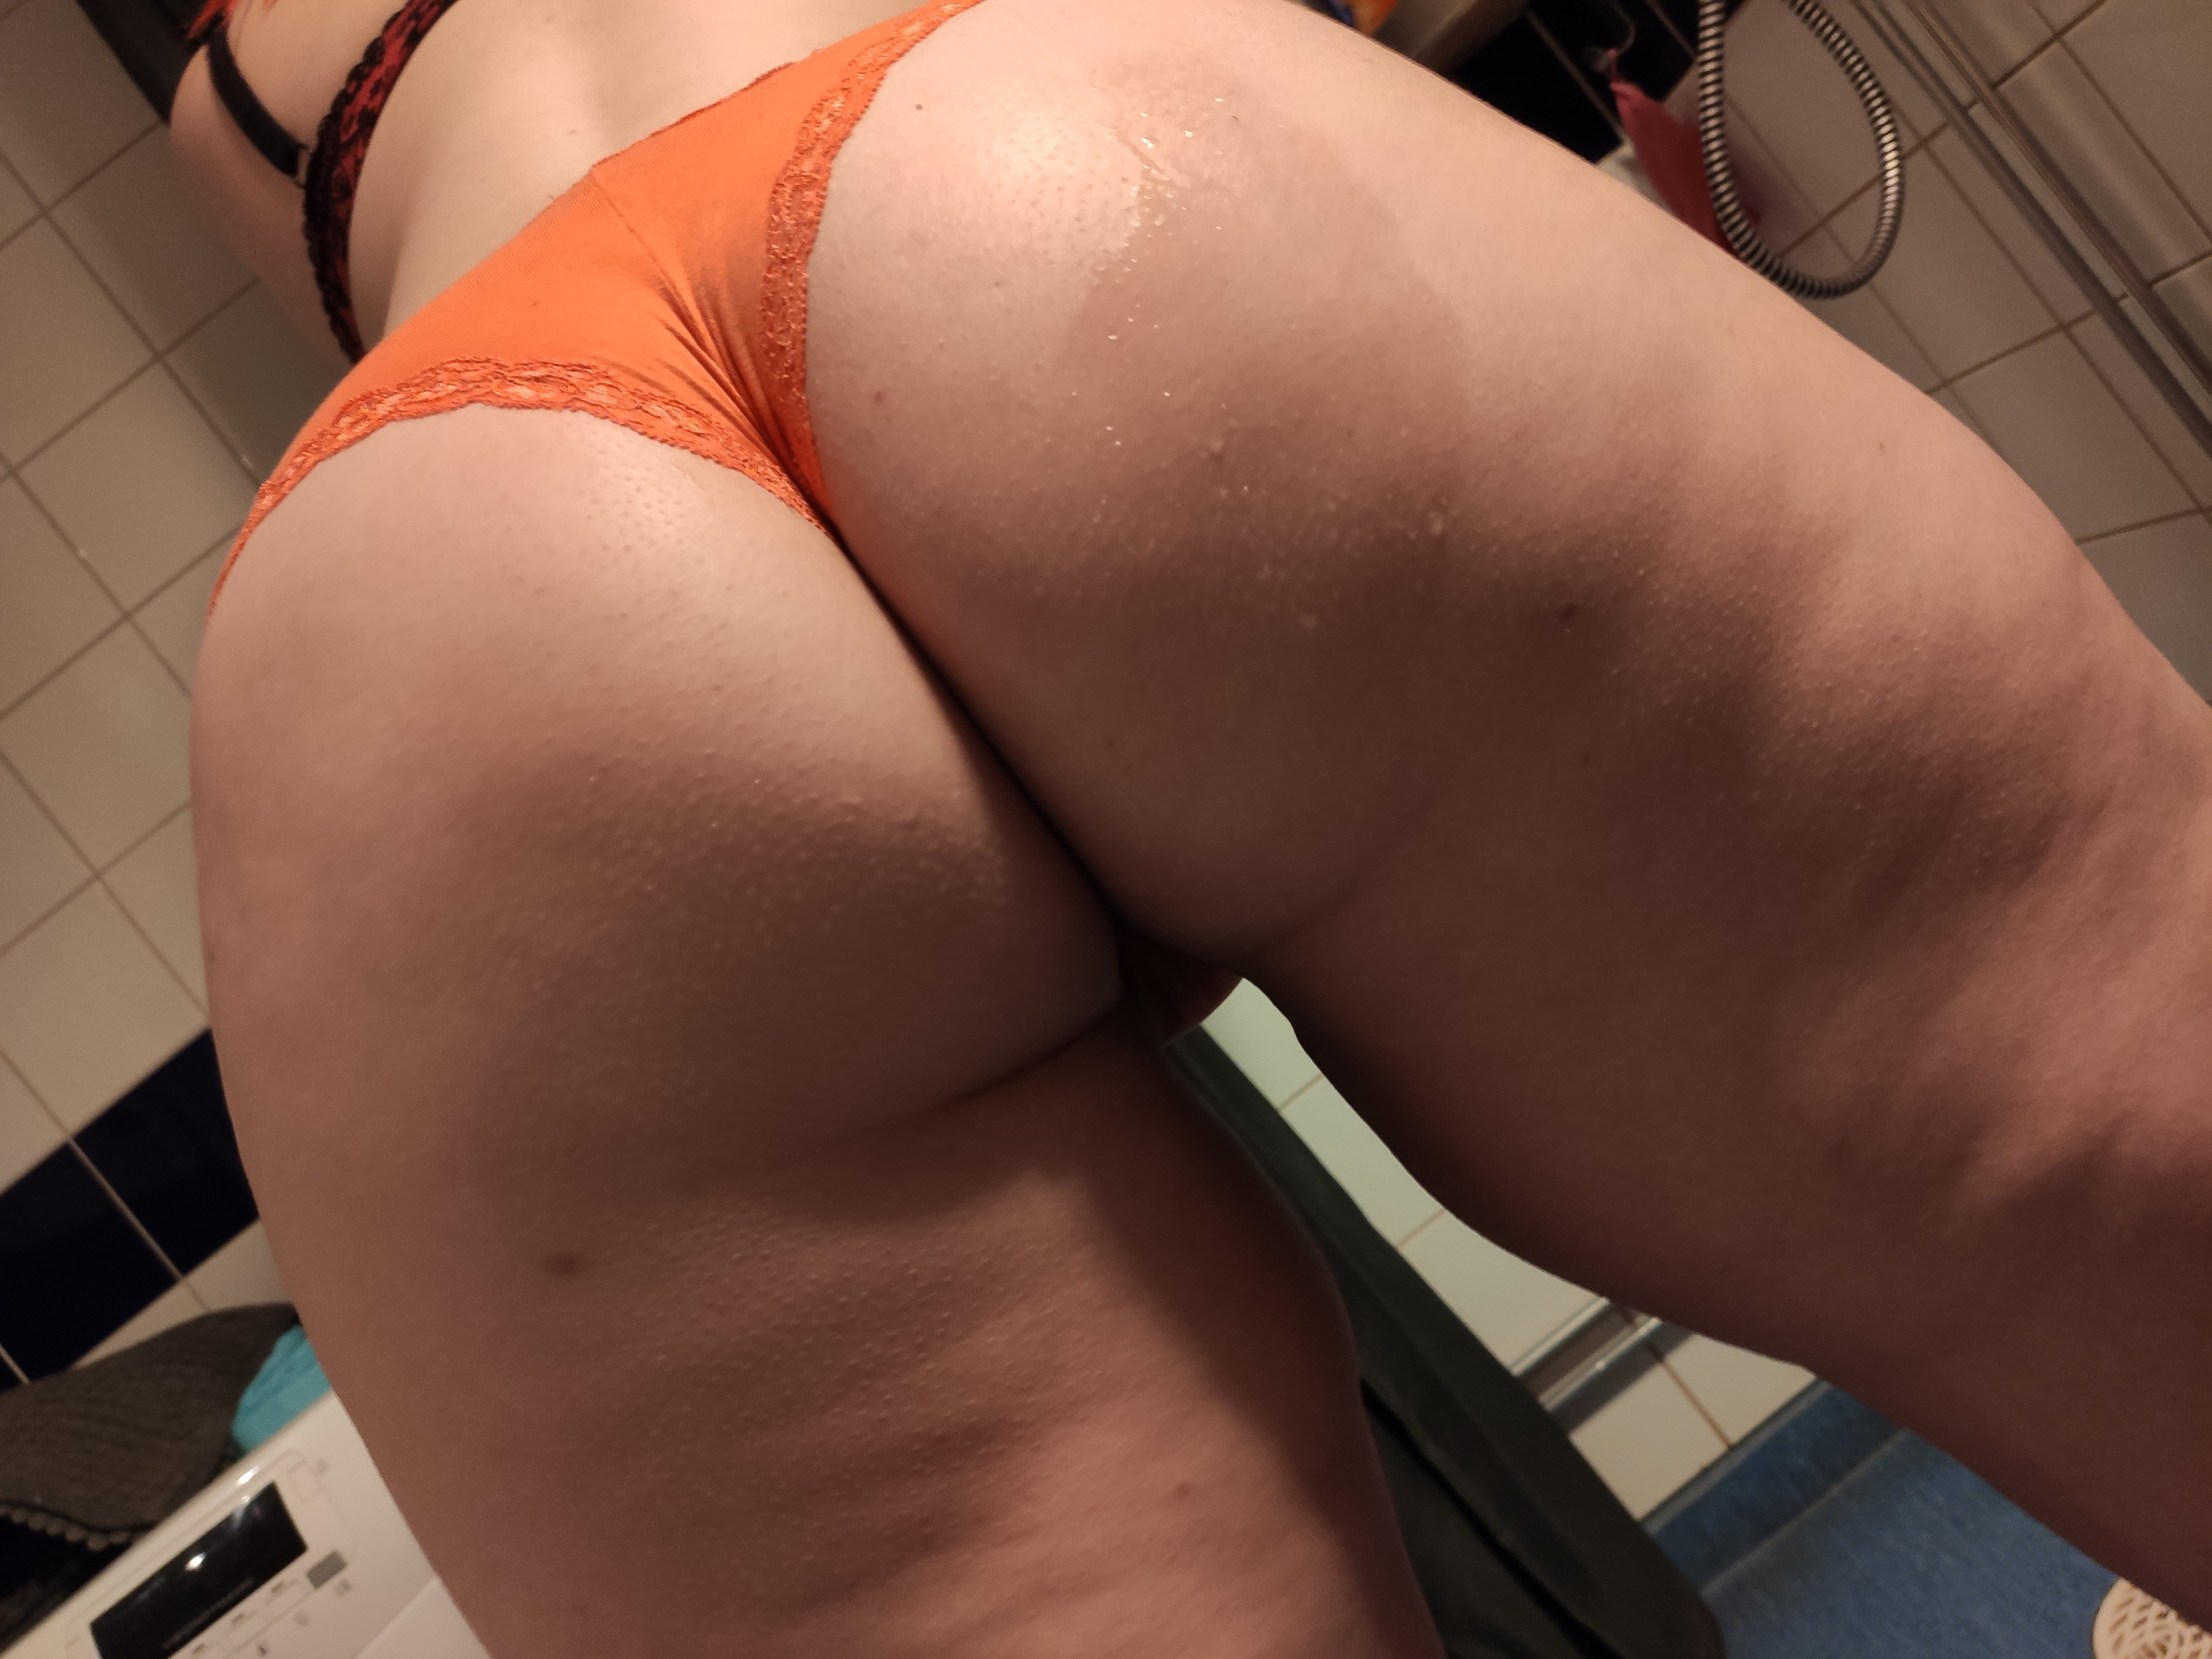 Hey Dreamiz just posted a new video come watch this hot babe...